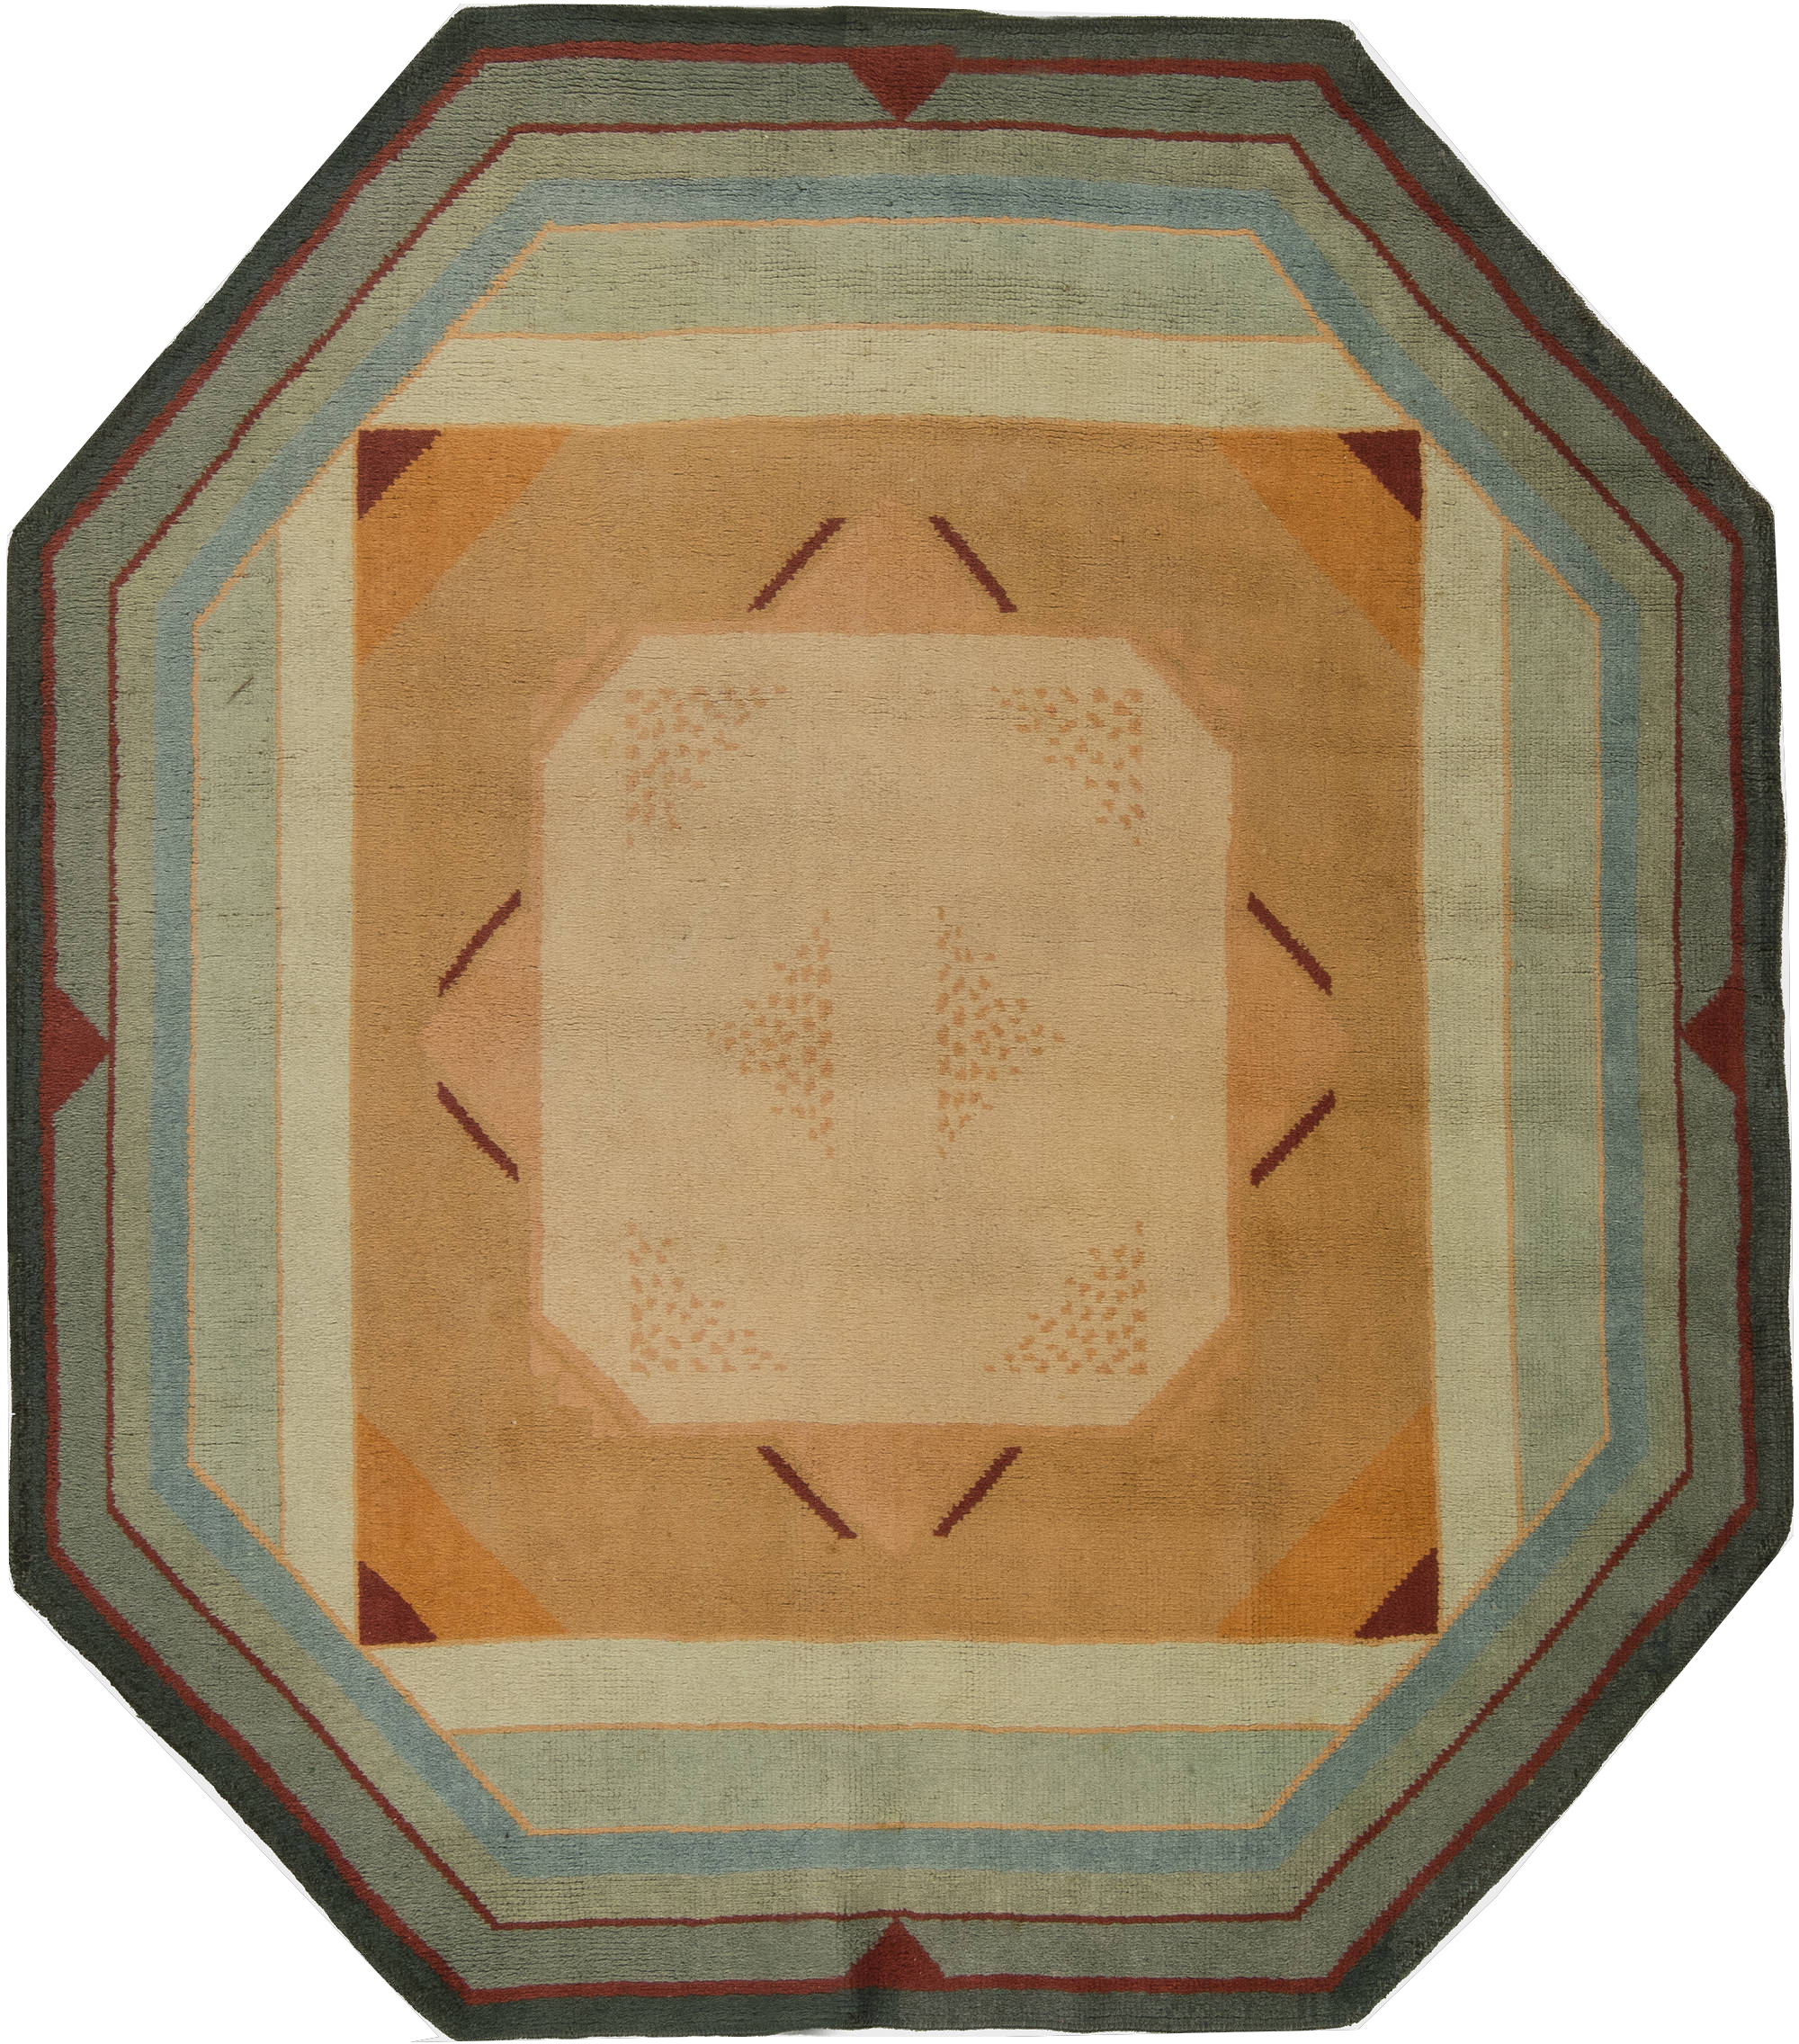 European Art Deco Rugs Amp Carpets For Sale Antique Vintage